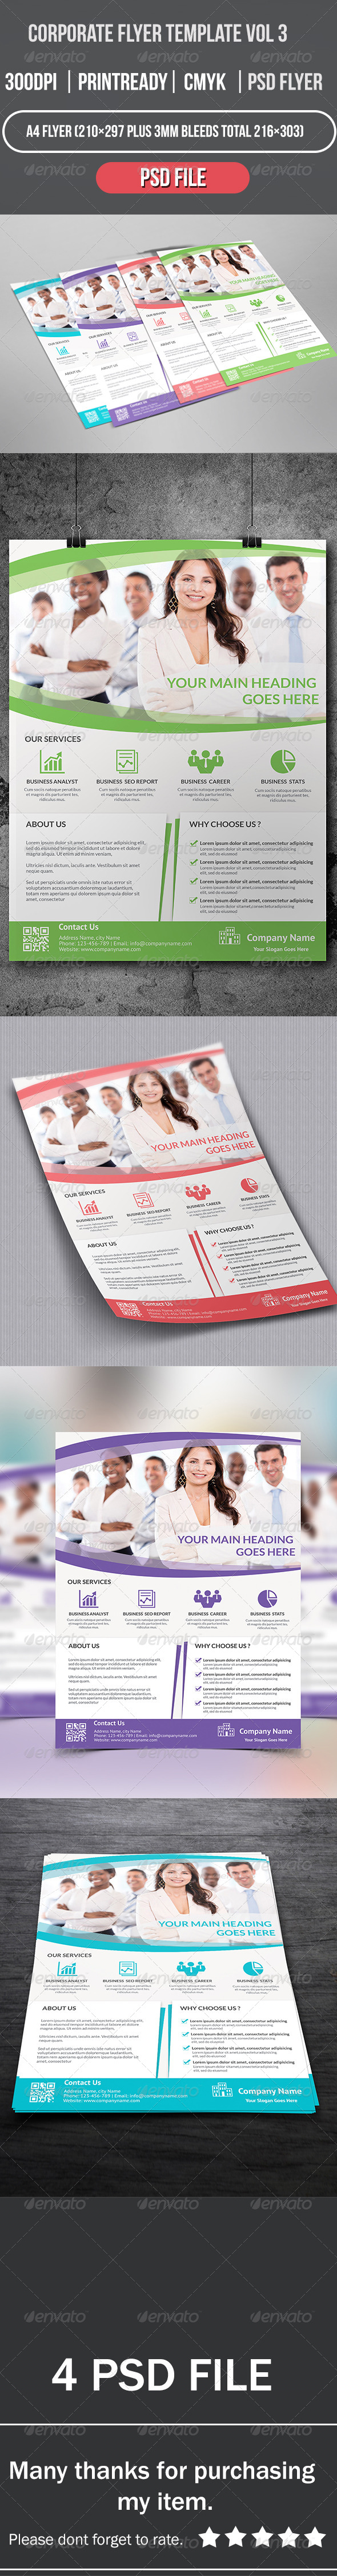 GraphicRiver Corporate Flyer Template Vol 3 8406190